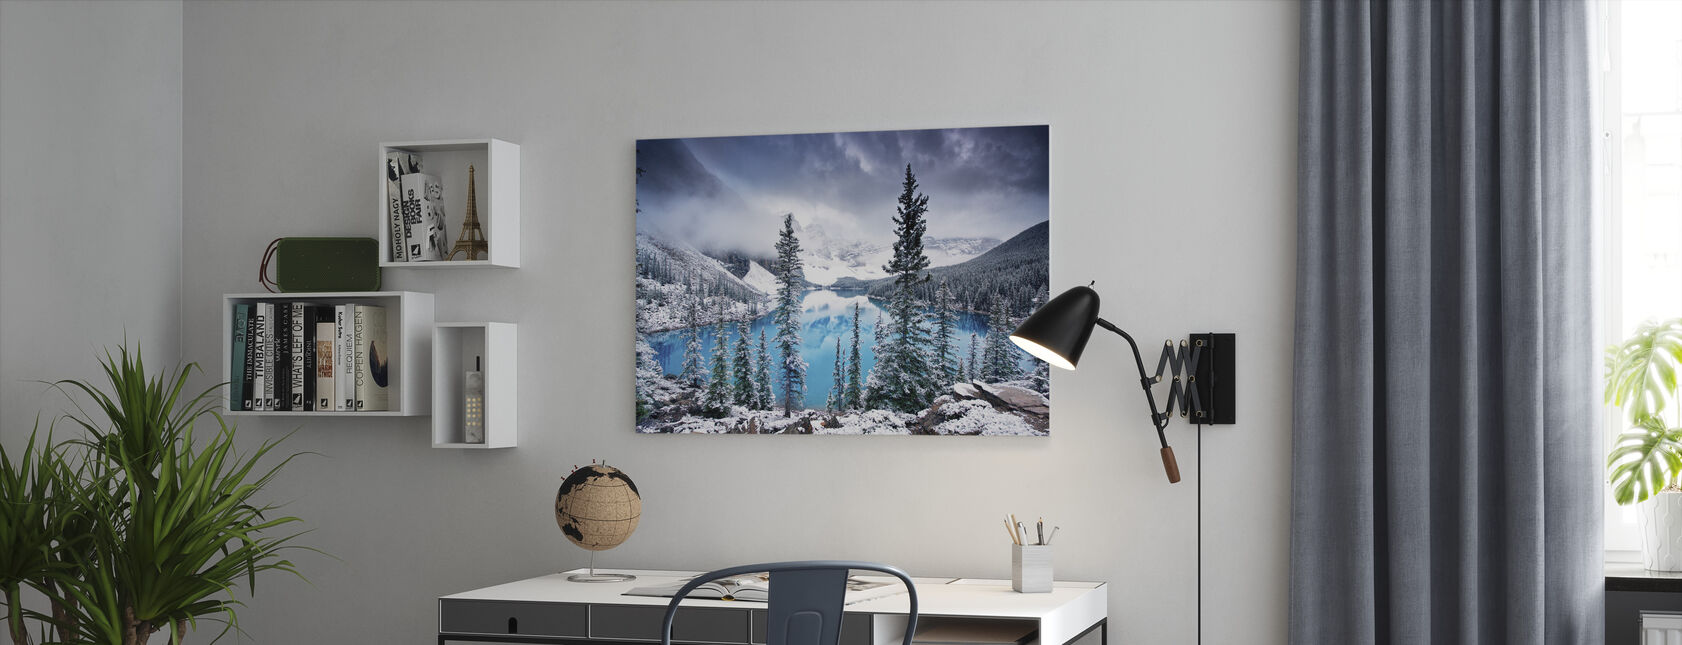 Morning Blues - Canvas print - Office